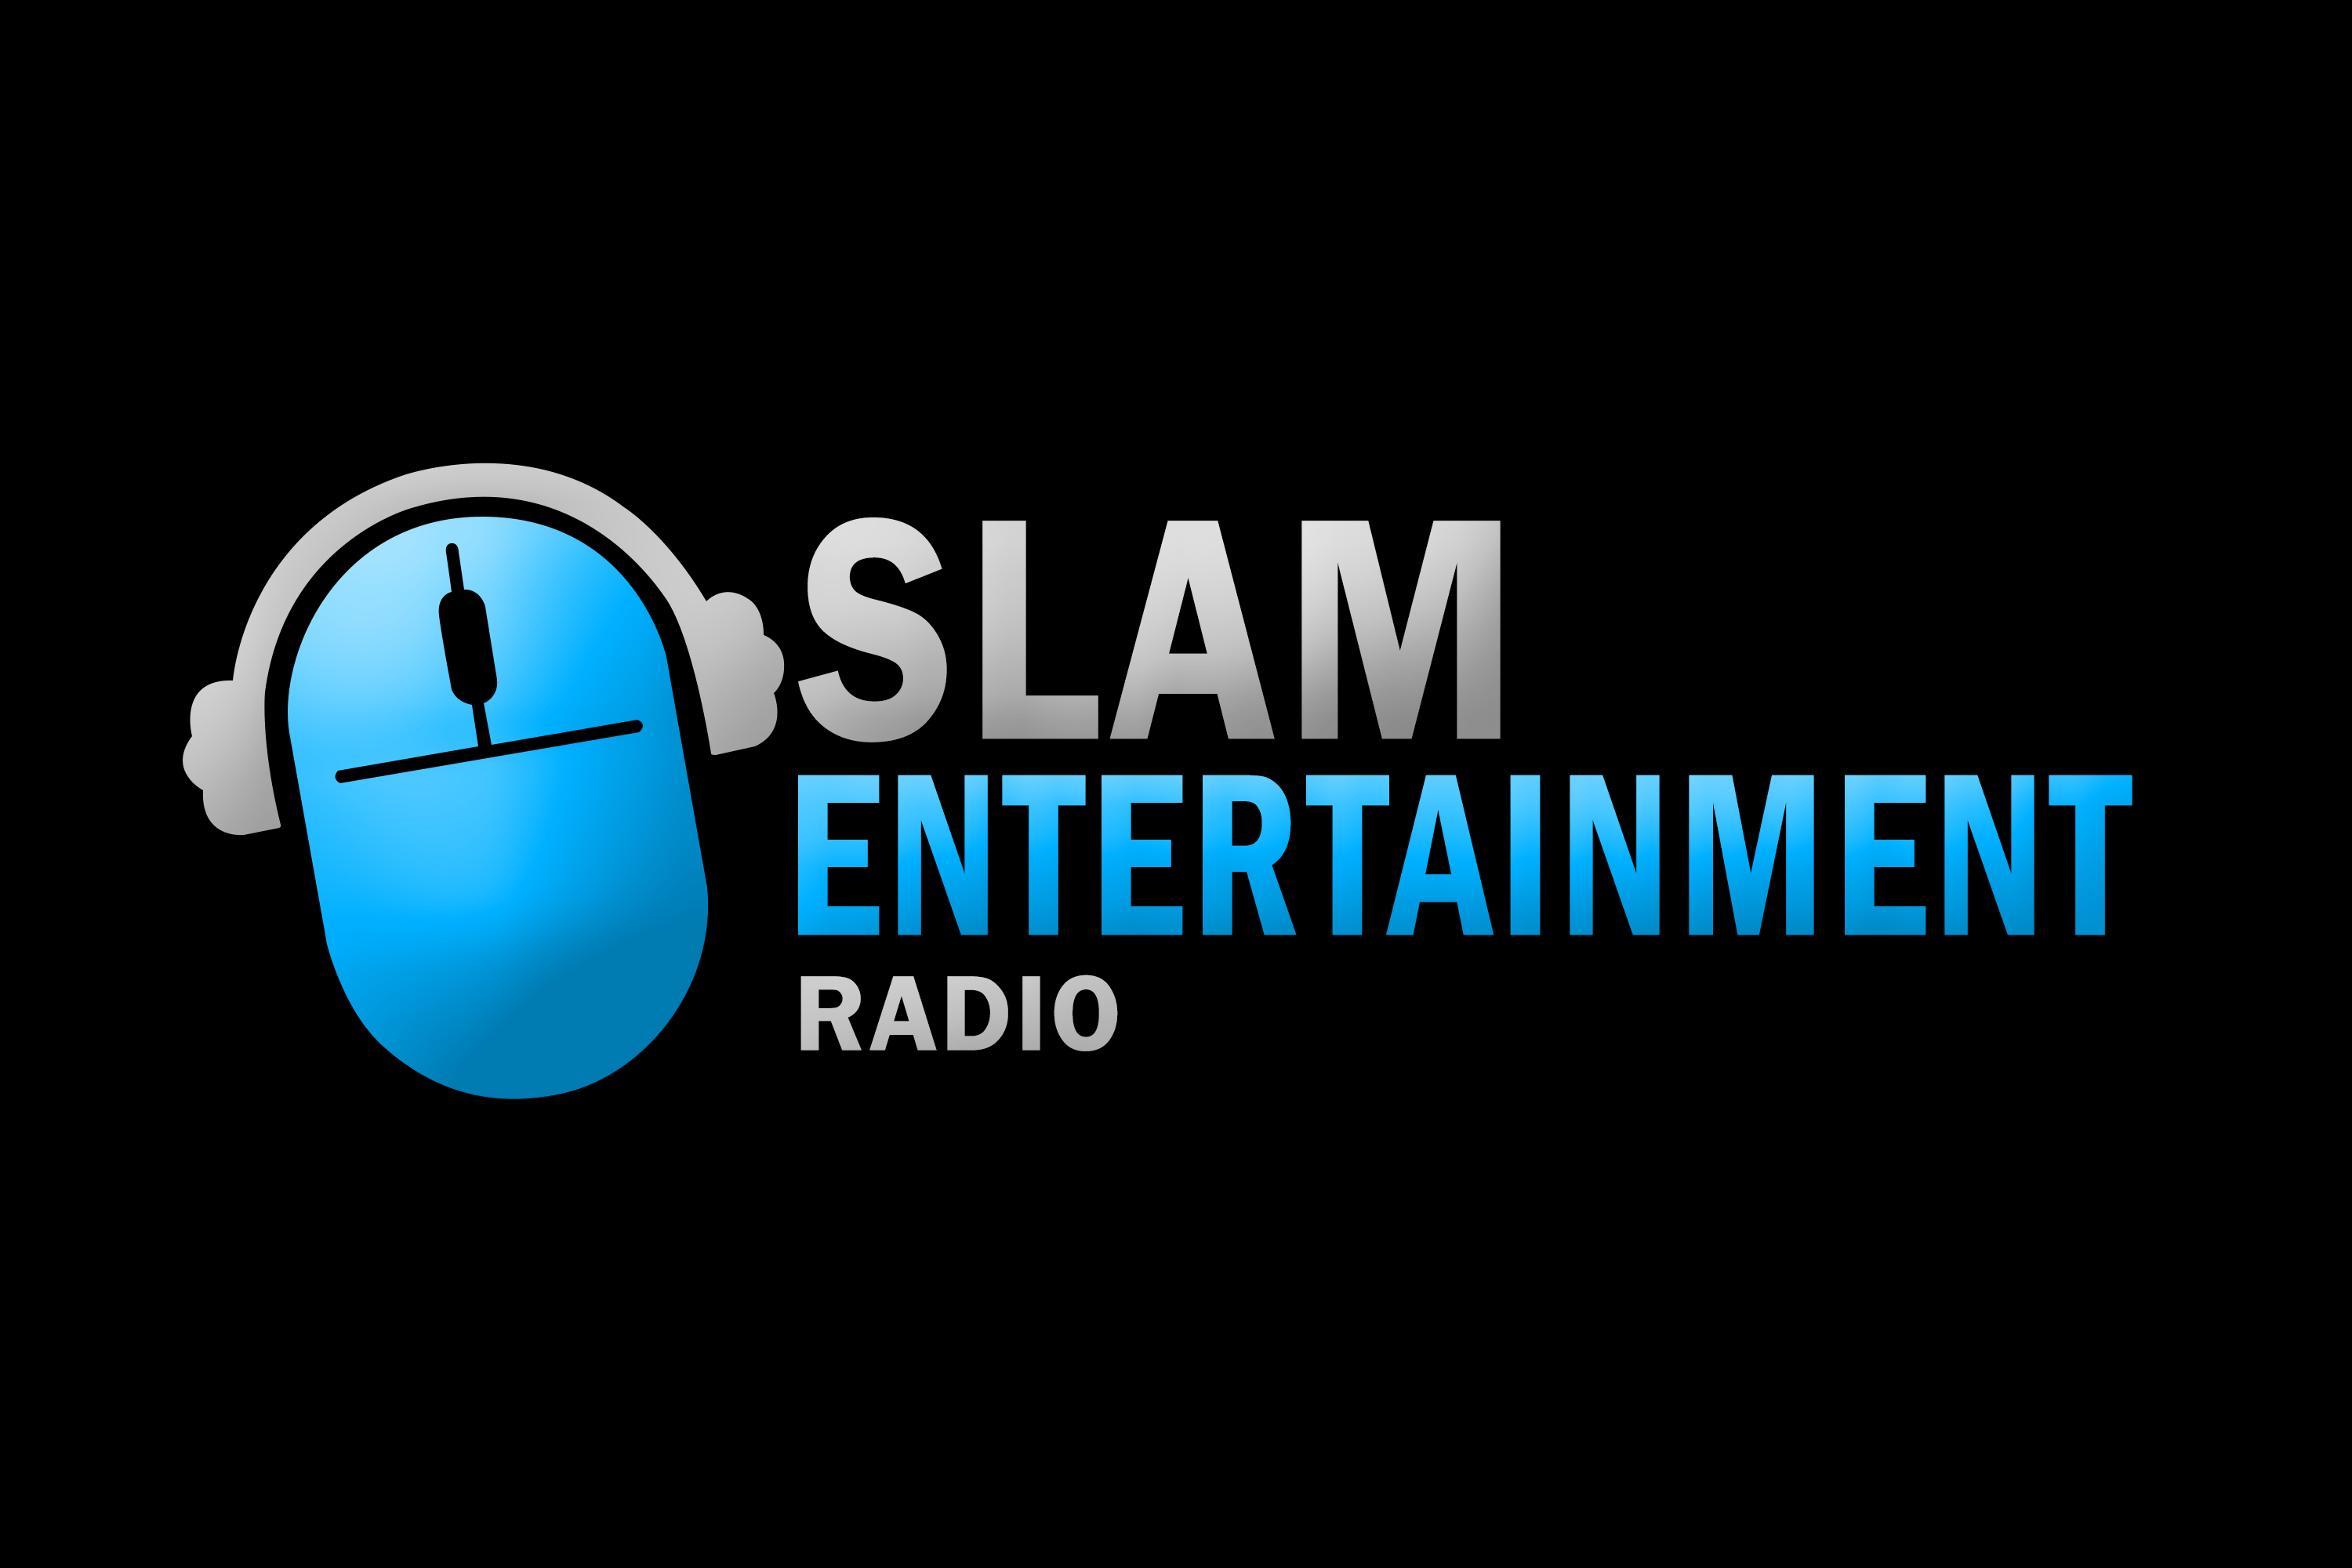 Slam Entertainment Radio